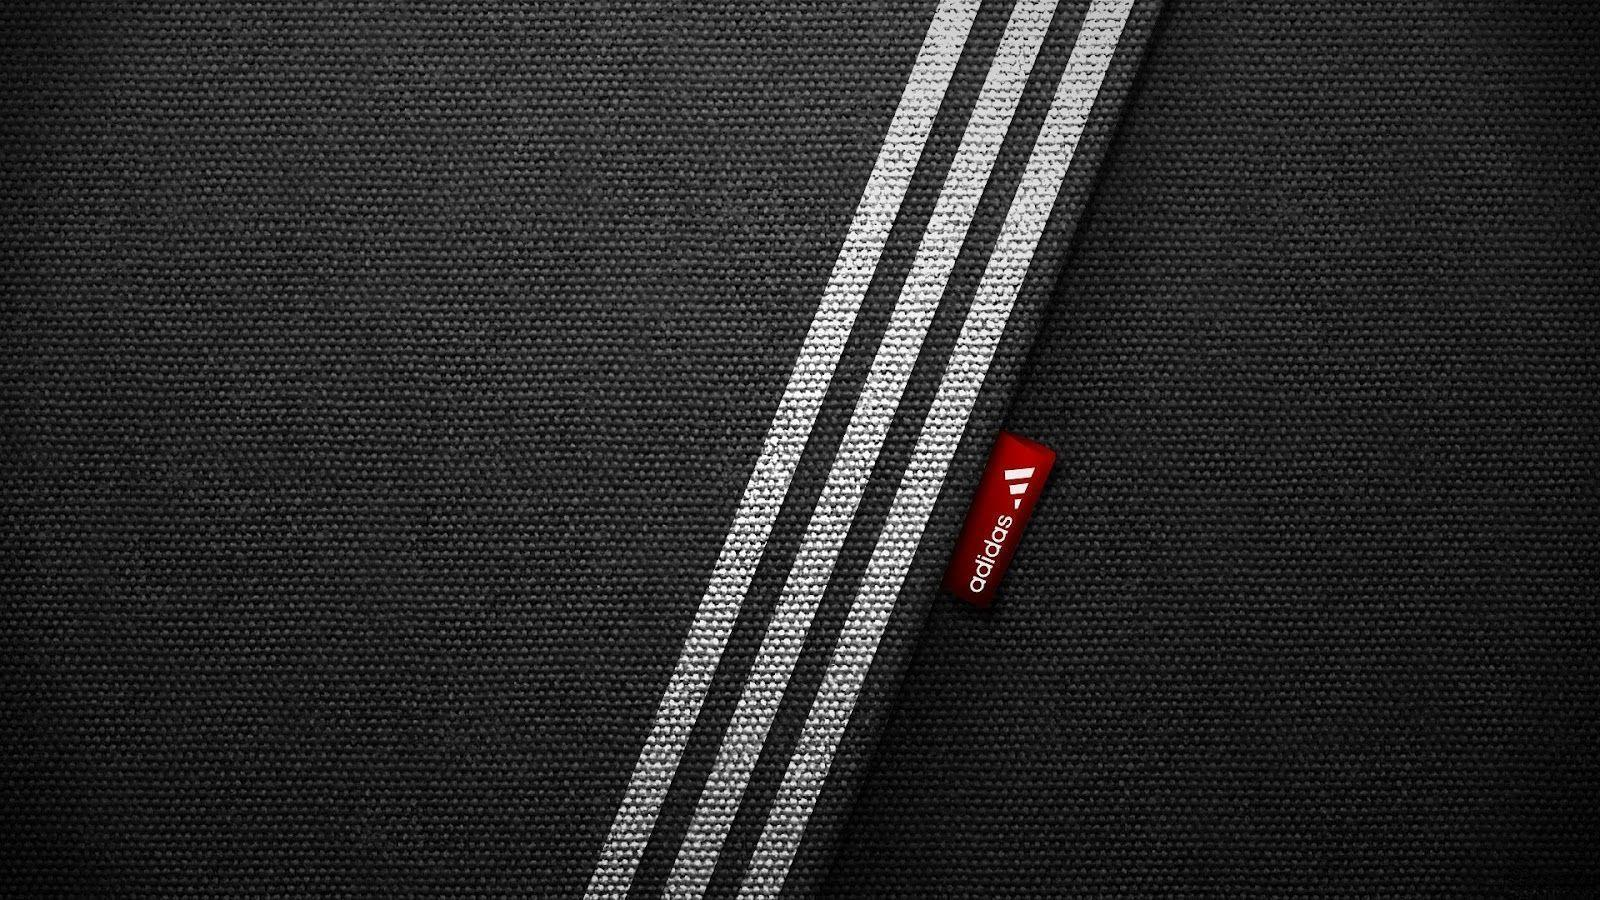 Adidas Logo HD Wallpapers Download Free Wallpapers in HD for your ...